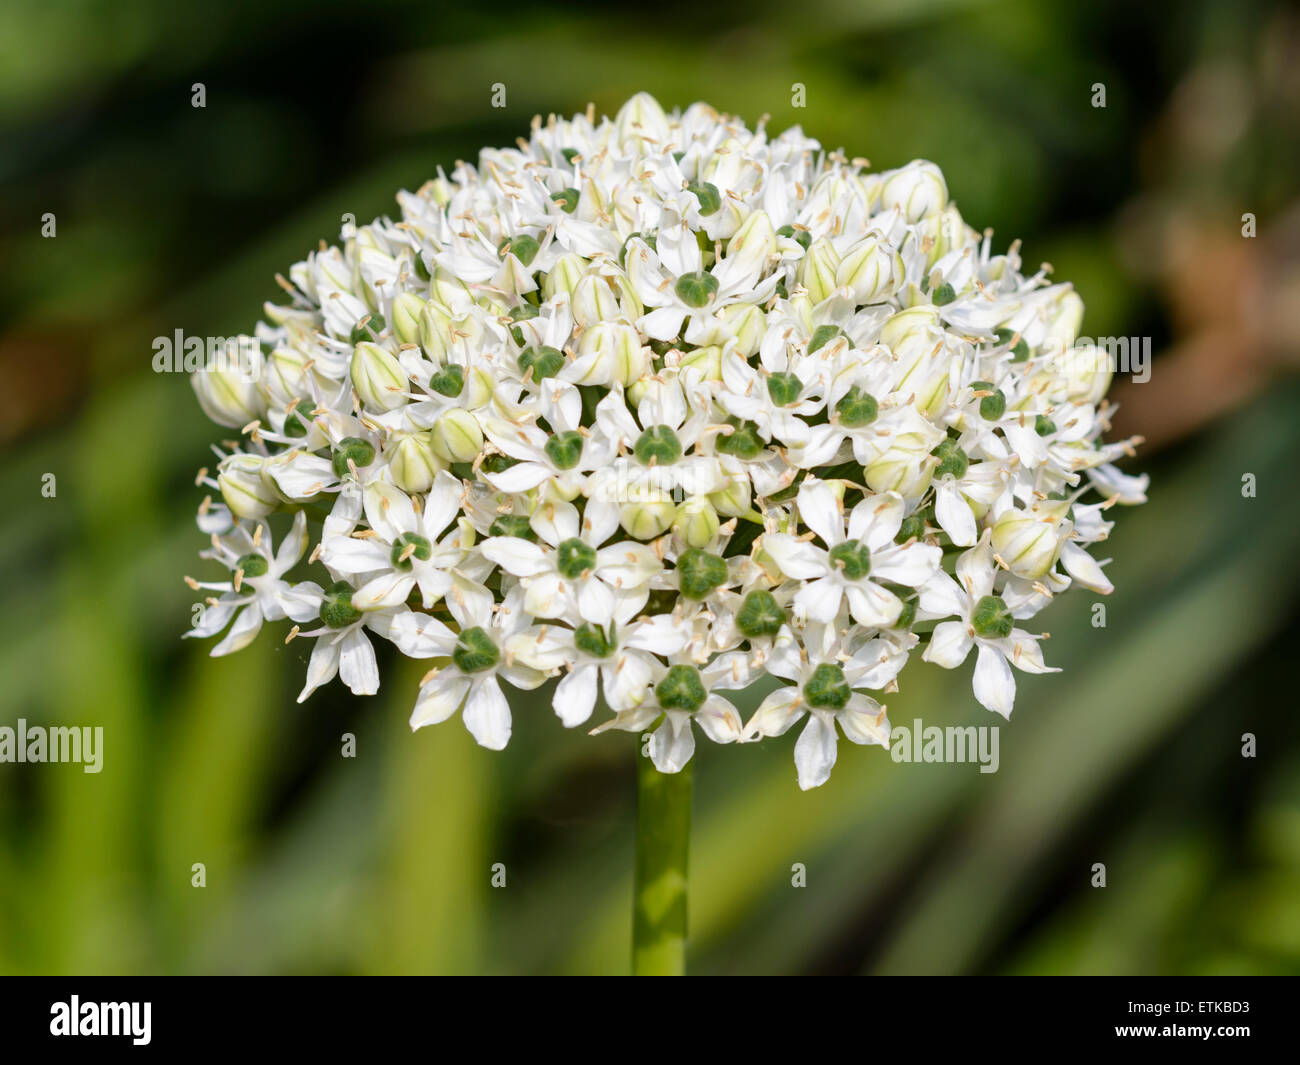 Black Garlic flower (also Broad-leaved Onion or Allium Nigrum) in mid June in the UK. Stock Photo